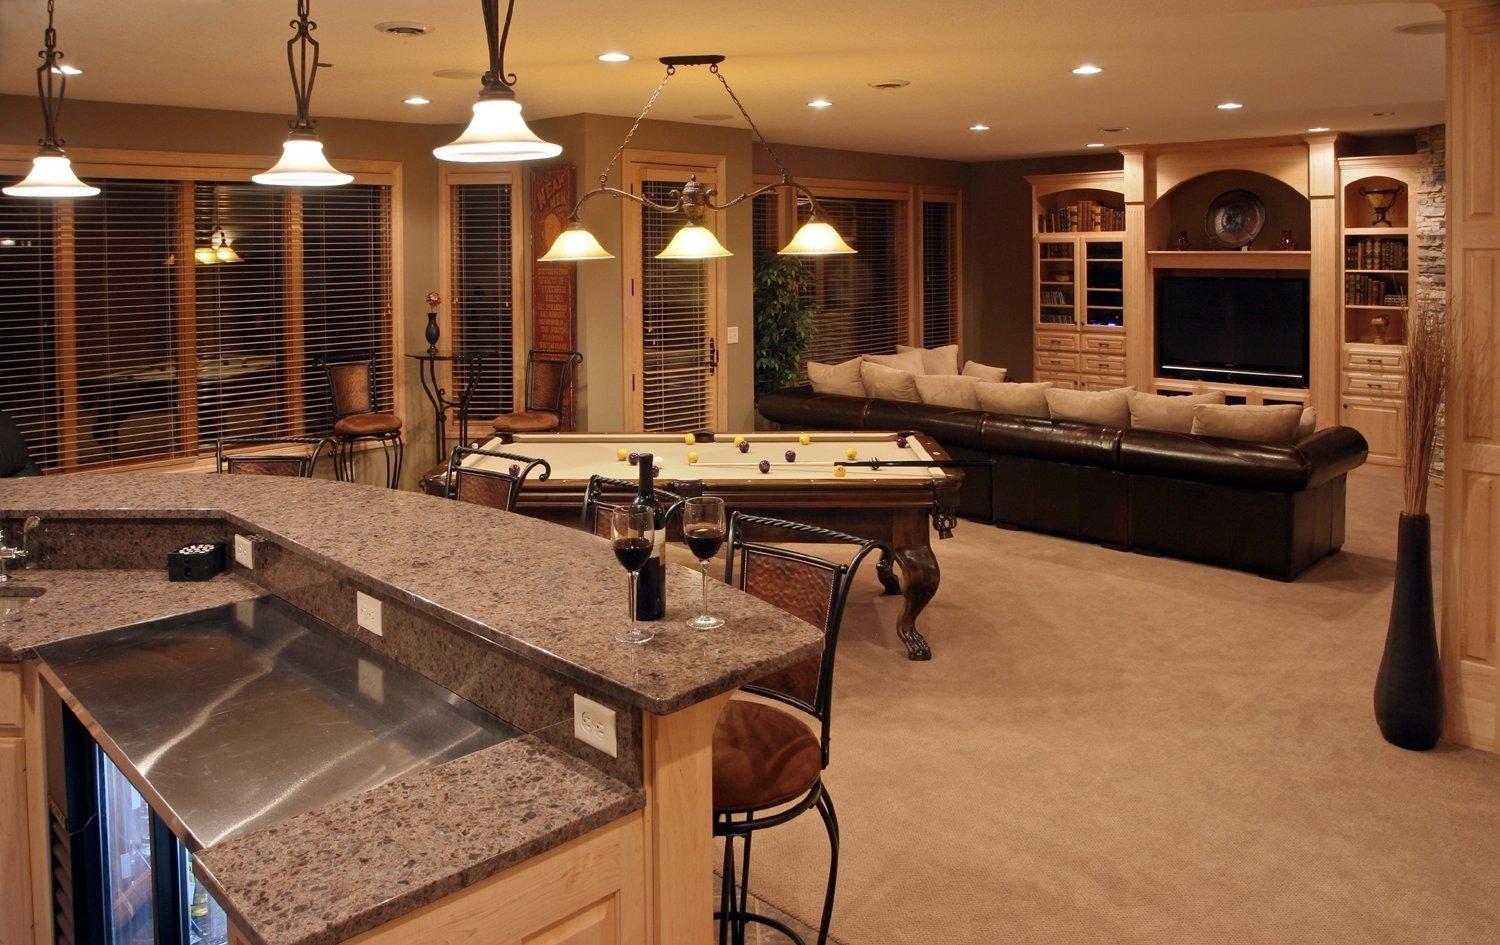 10 Fantastic Basement Ideas On A Budget finished basements on a budget regarding lates 933 2020